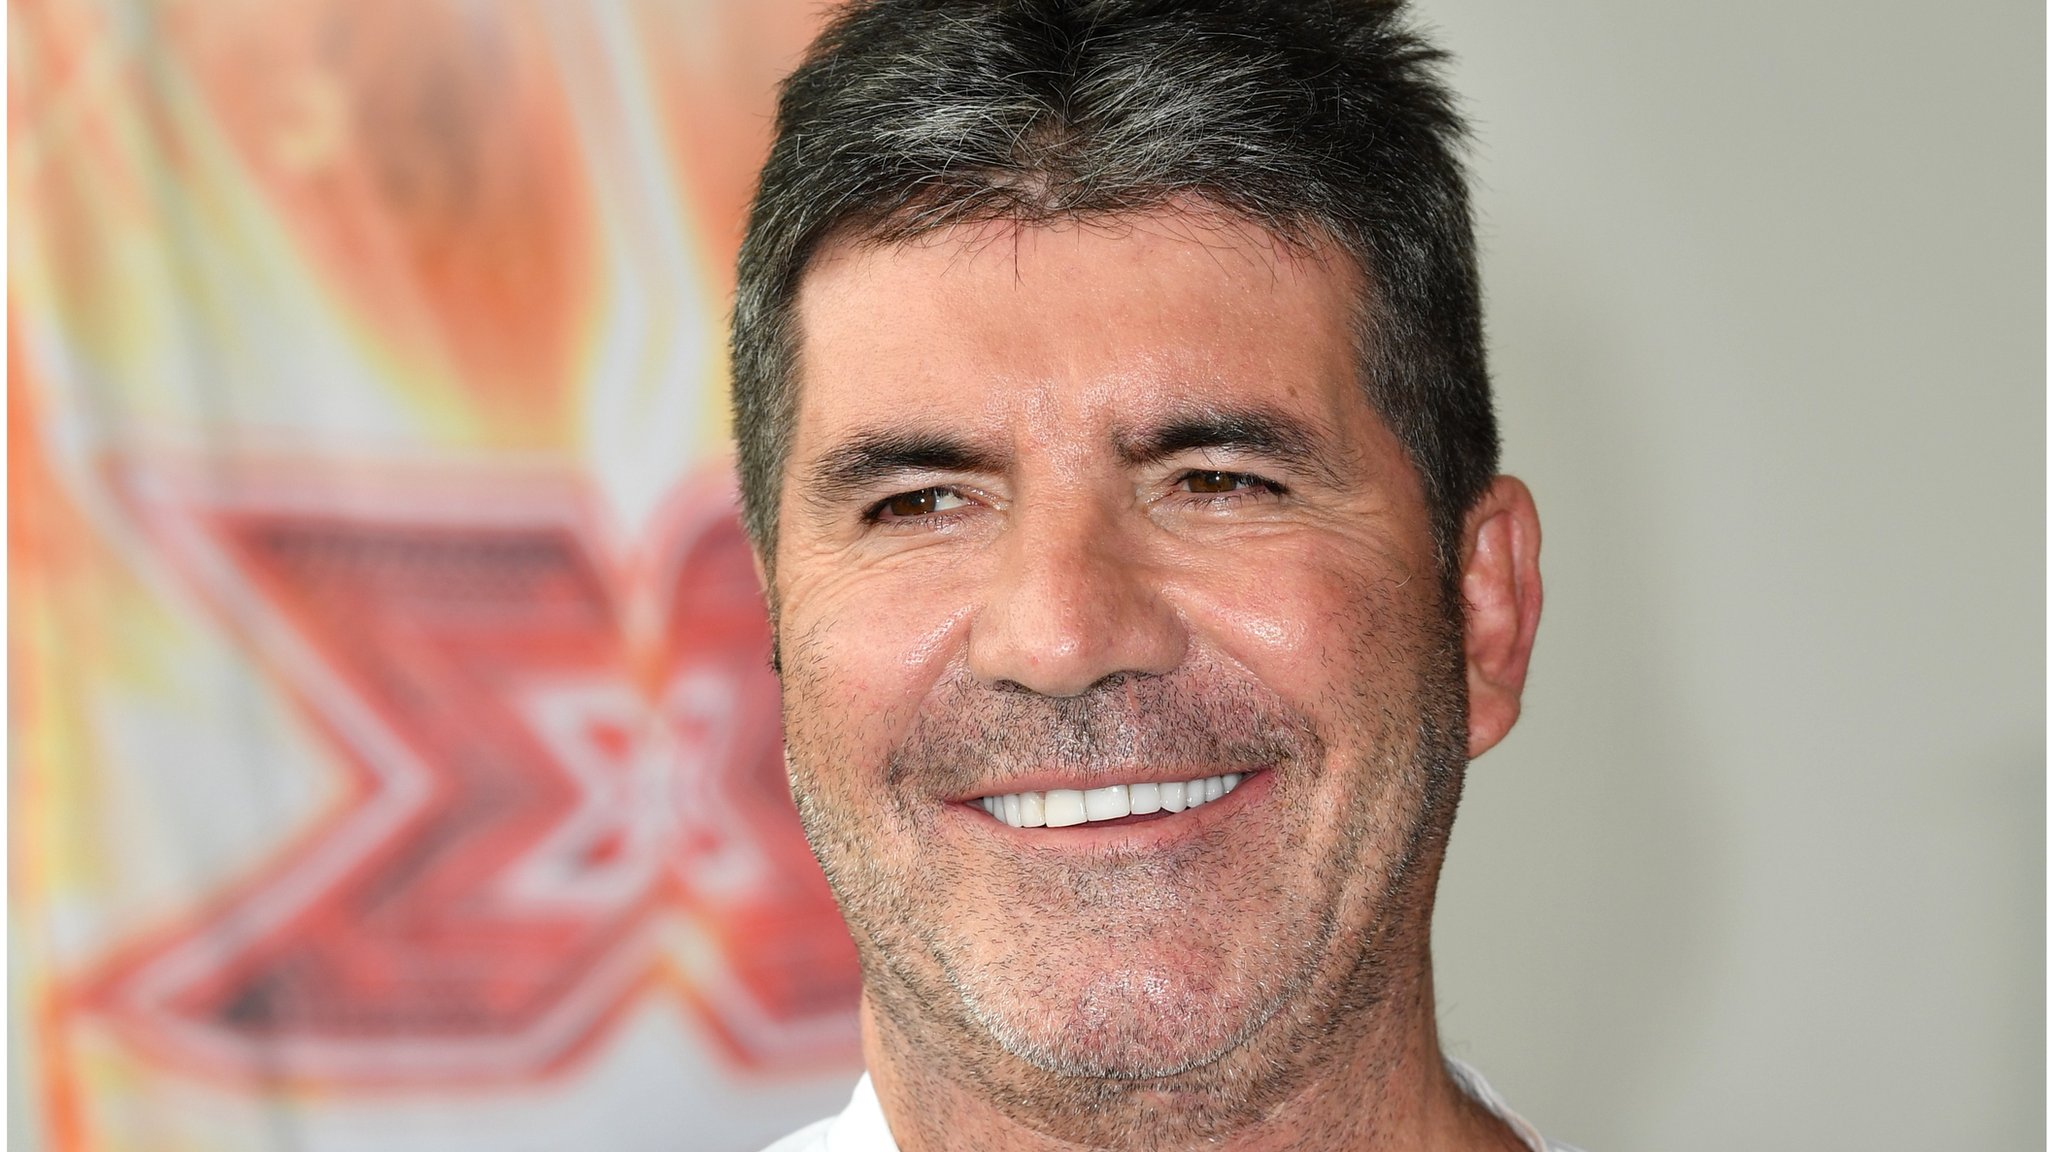 X Factor: Get a first look at judges' houses - CBBC Newsround